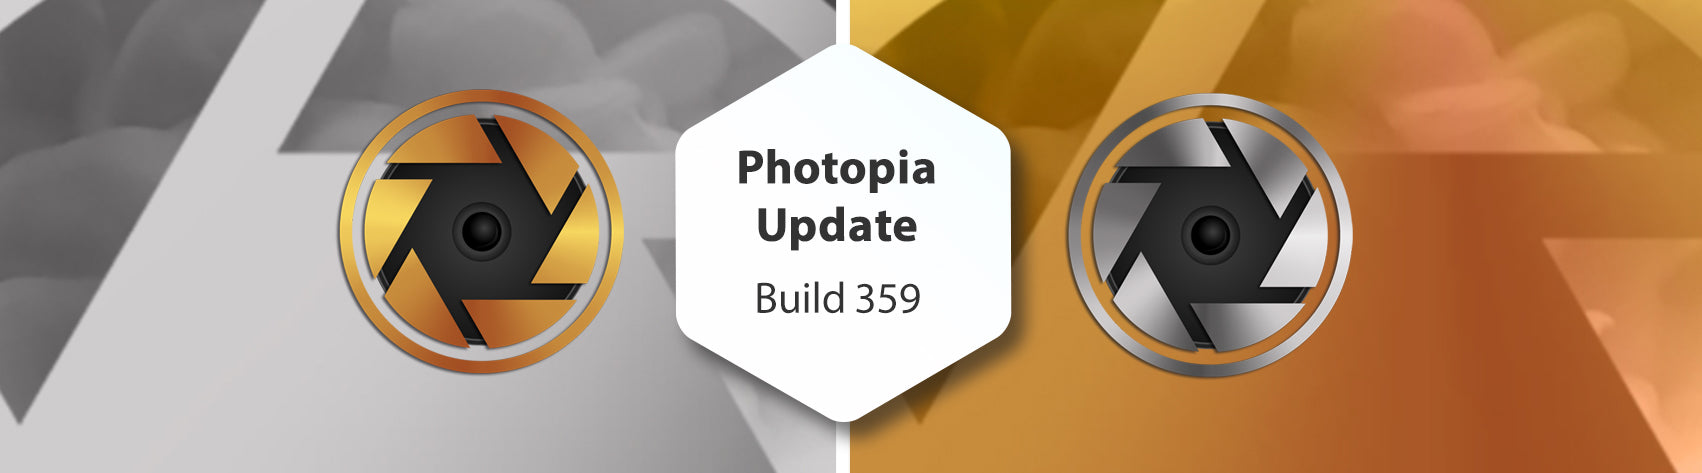 Photopia Update - Build 359